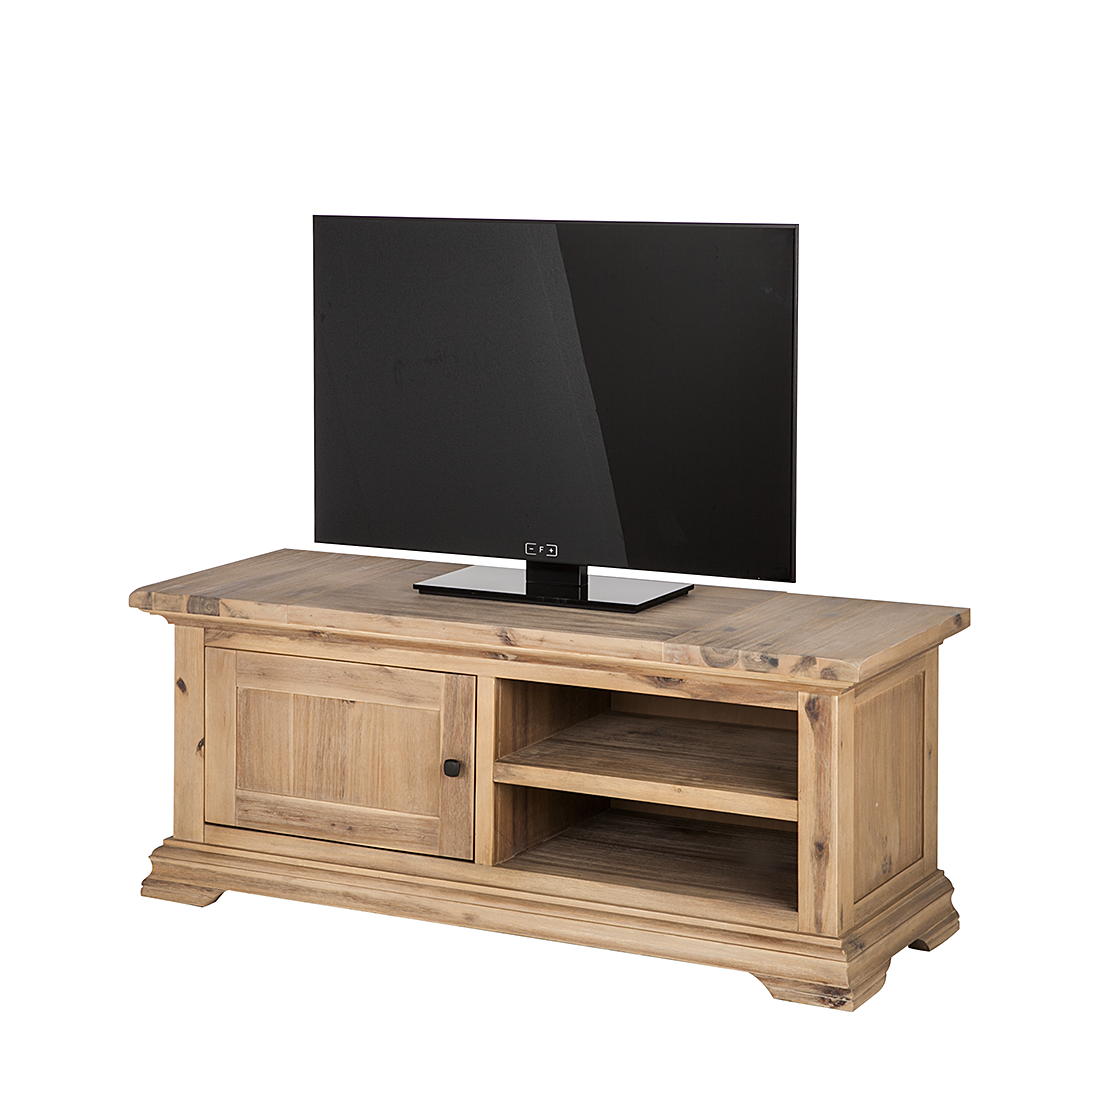 lowboard akazie massivholz 150cm fernsehtisch tv hifi rack sideboard schrank neu ebay. Black Bedroom Furniture Sets. Home Design Ideas